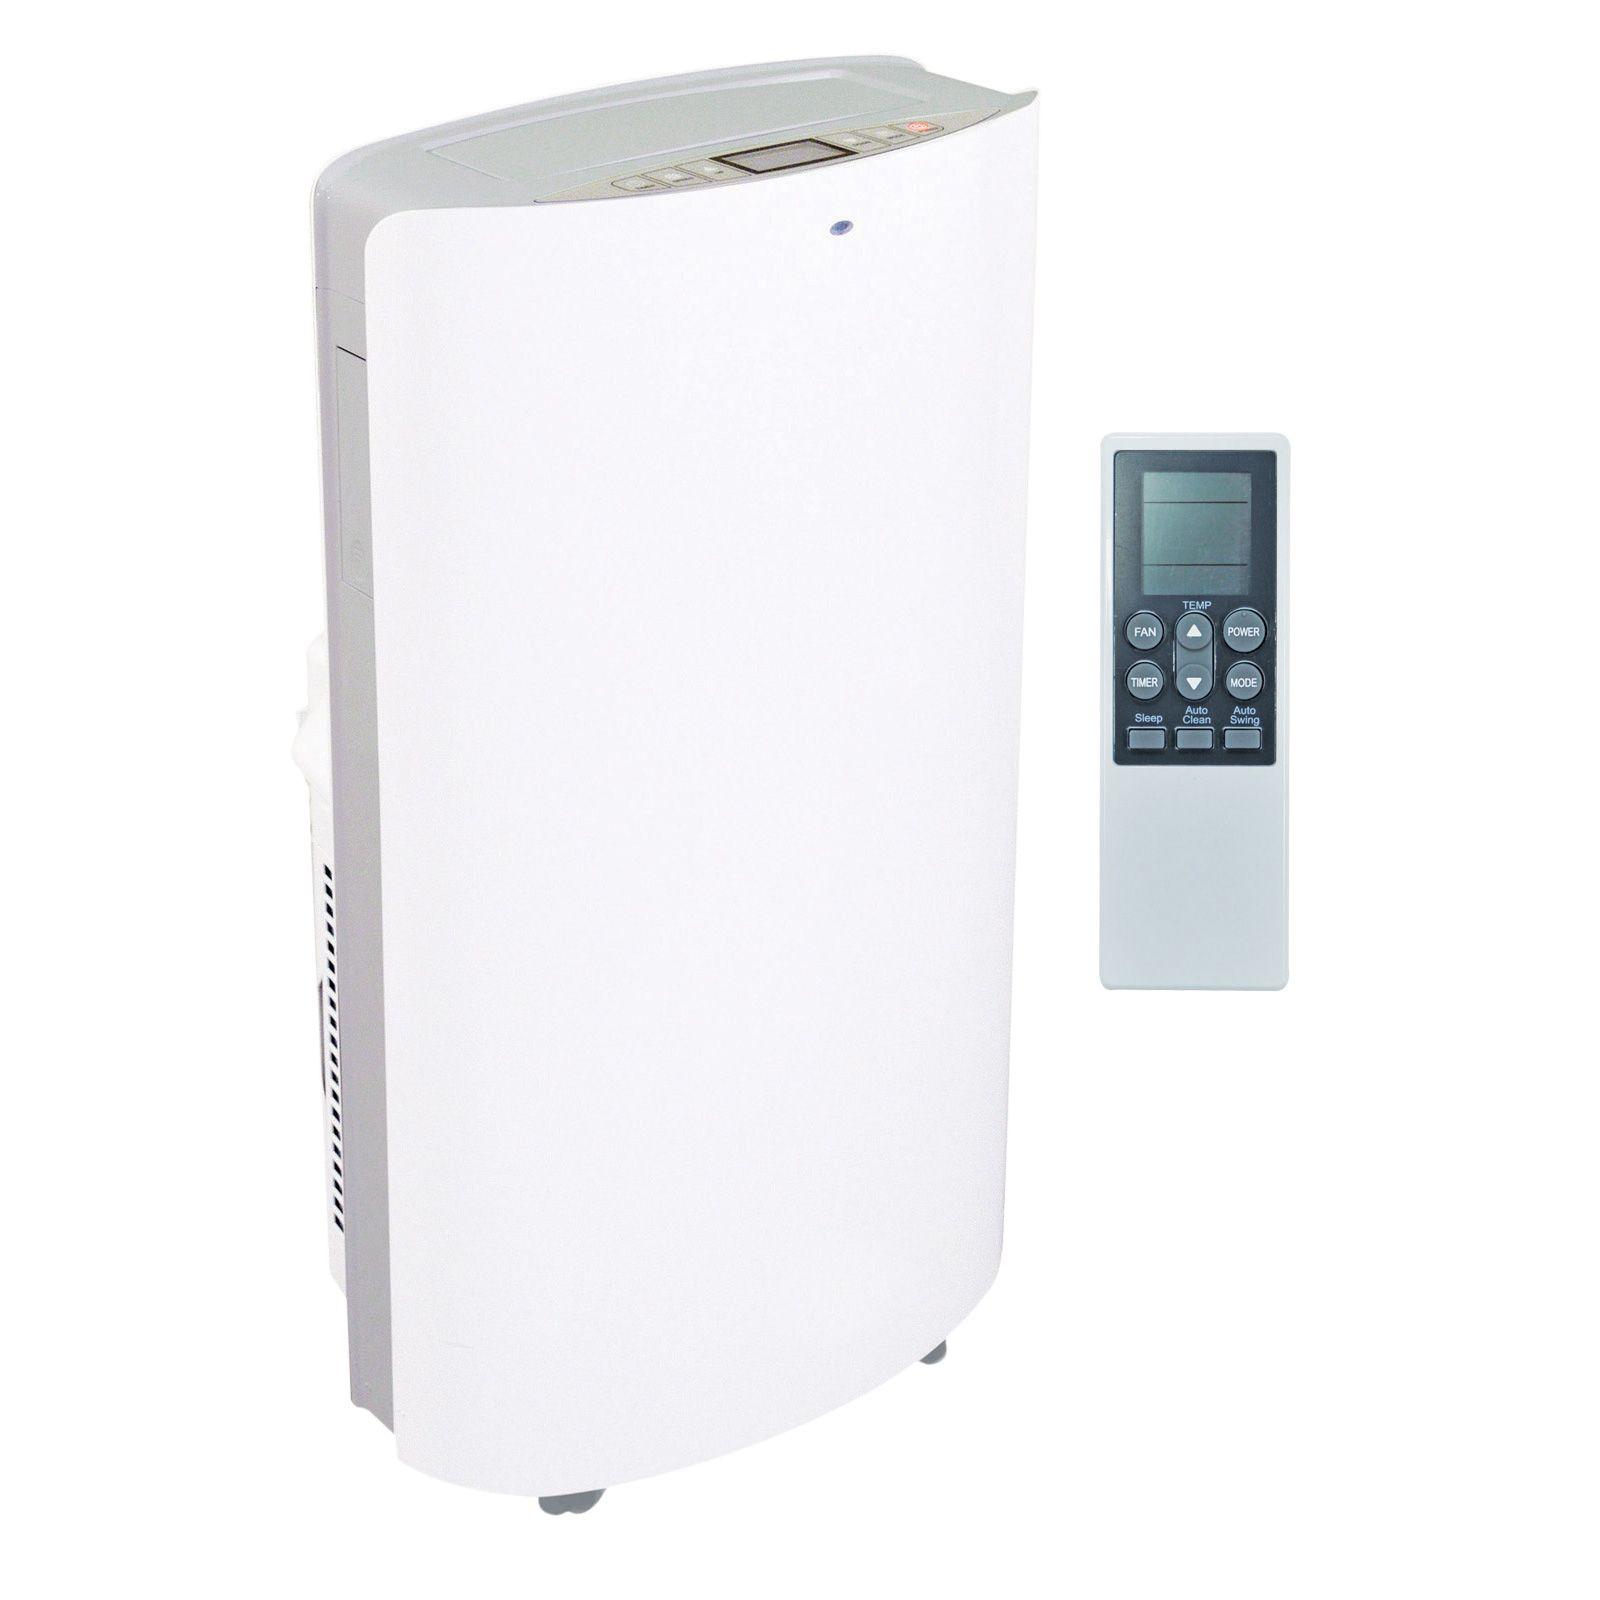 Eh1640 Portable Air Conditioner With Remote Control Timer